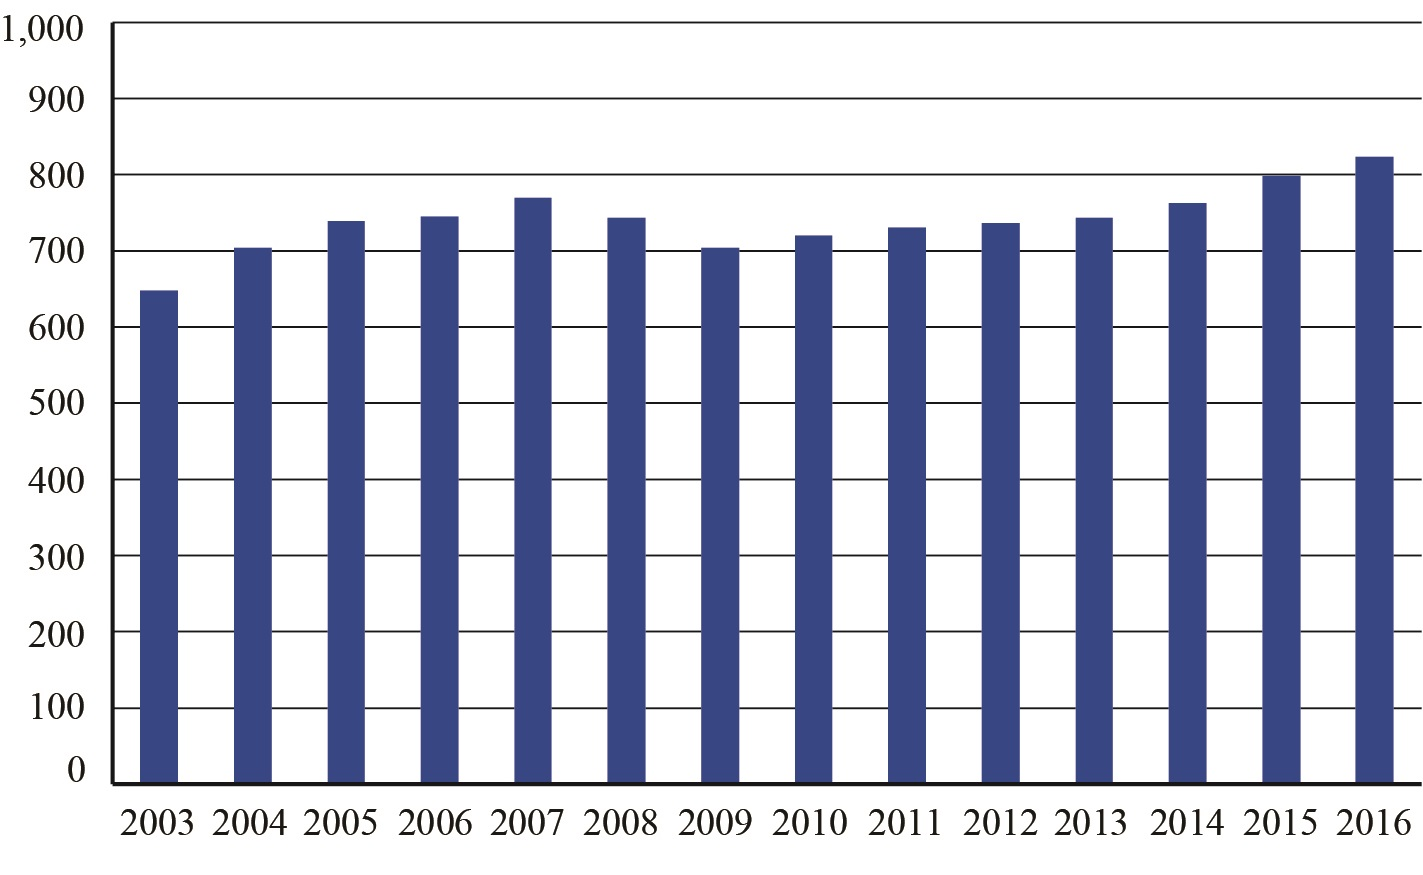 Figure 1. Annual Passengers on All U.S. Scheduled Airlines (Domestic & International), 2003-2016